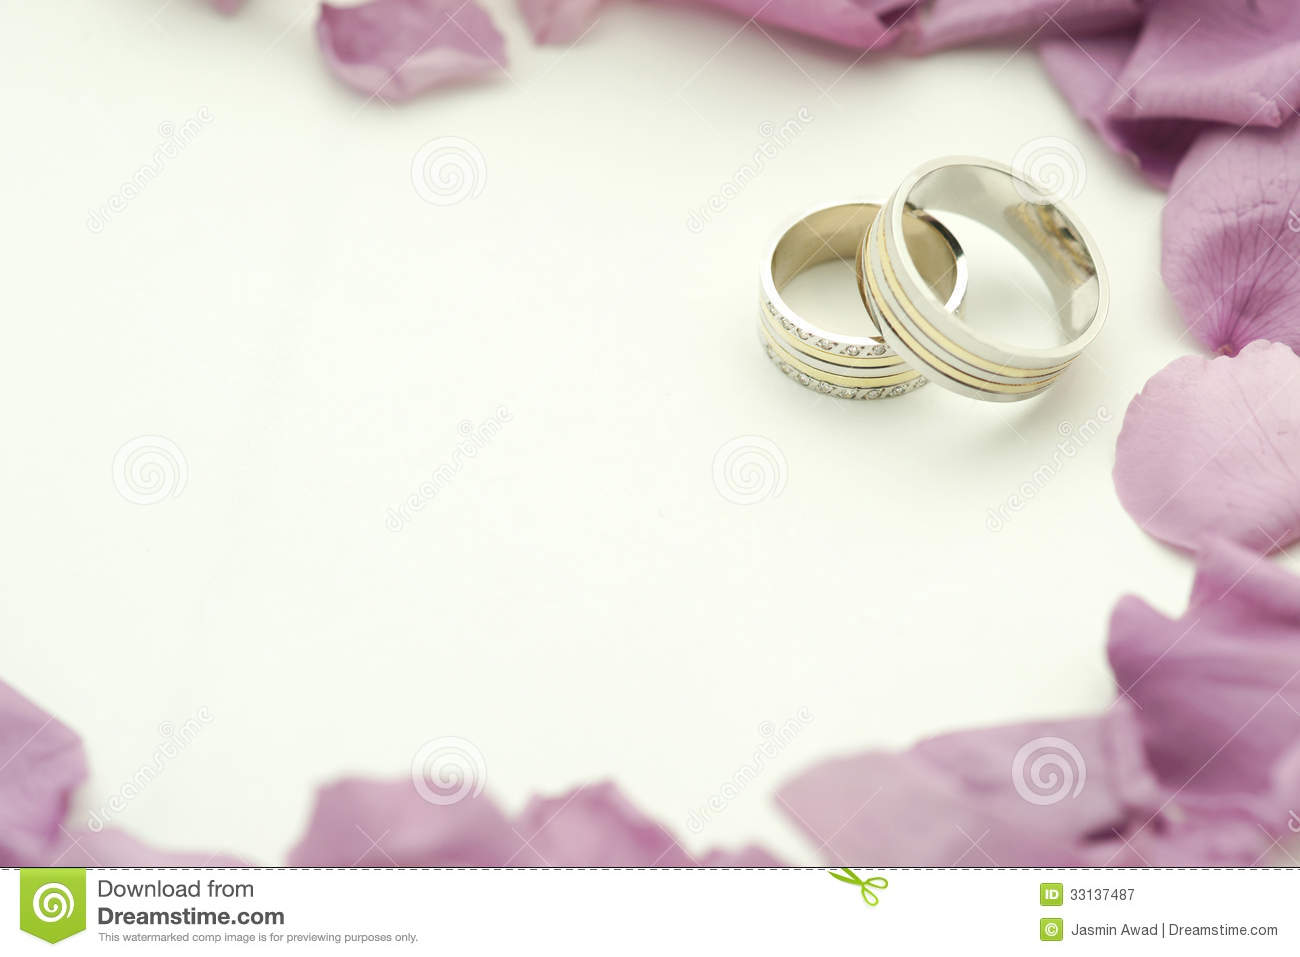 Wedding rings with roses and copy space.